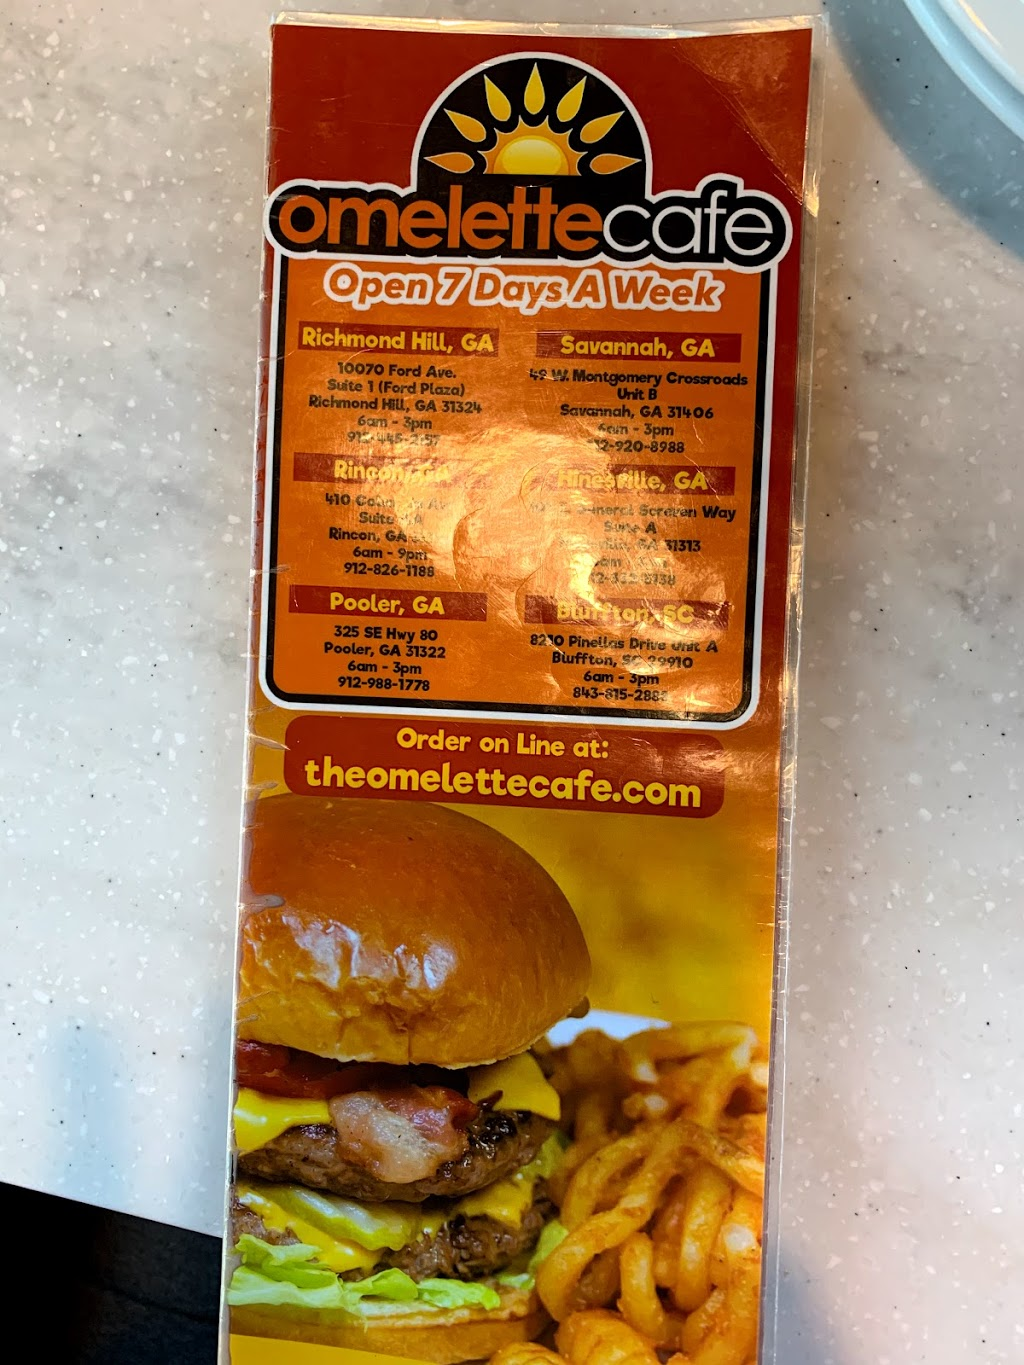 Omelette Cafe   restaurant   8210 Pinellas Dr, Bluffton, SC 29910, USA   8438152888 OR +1 843-815-2888